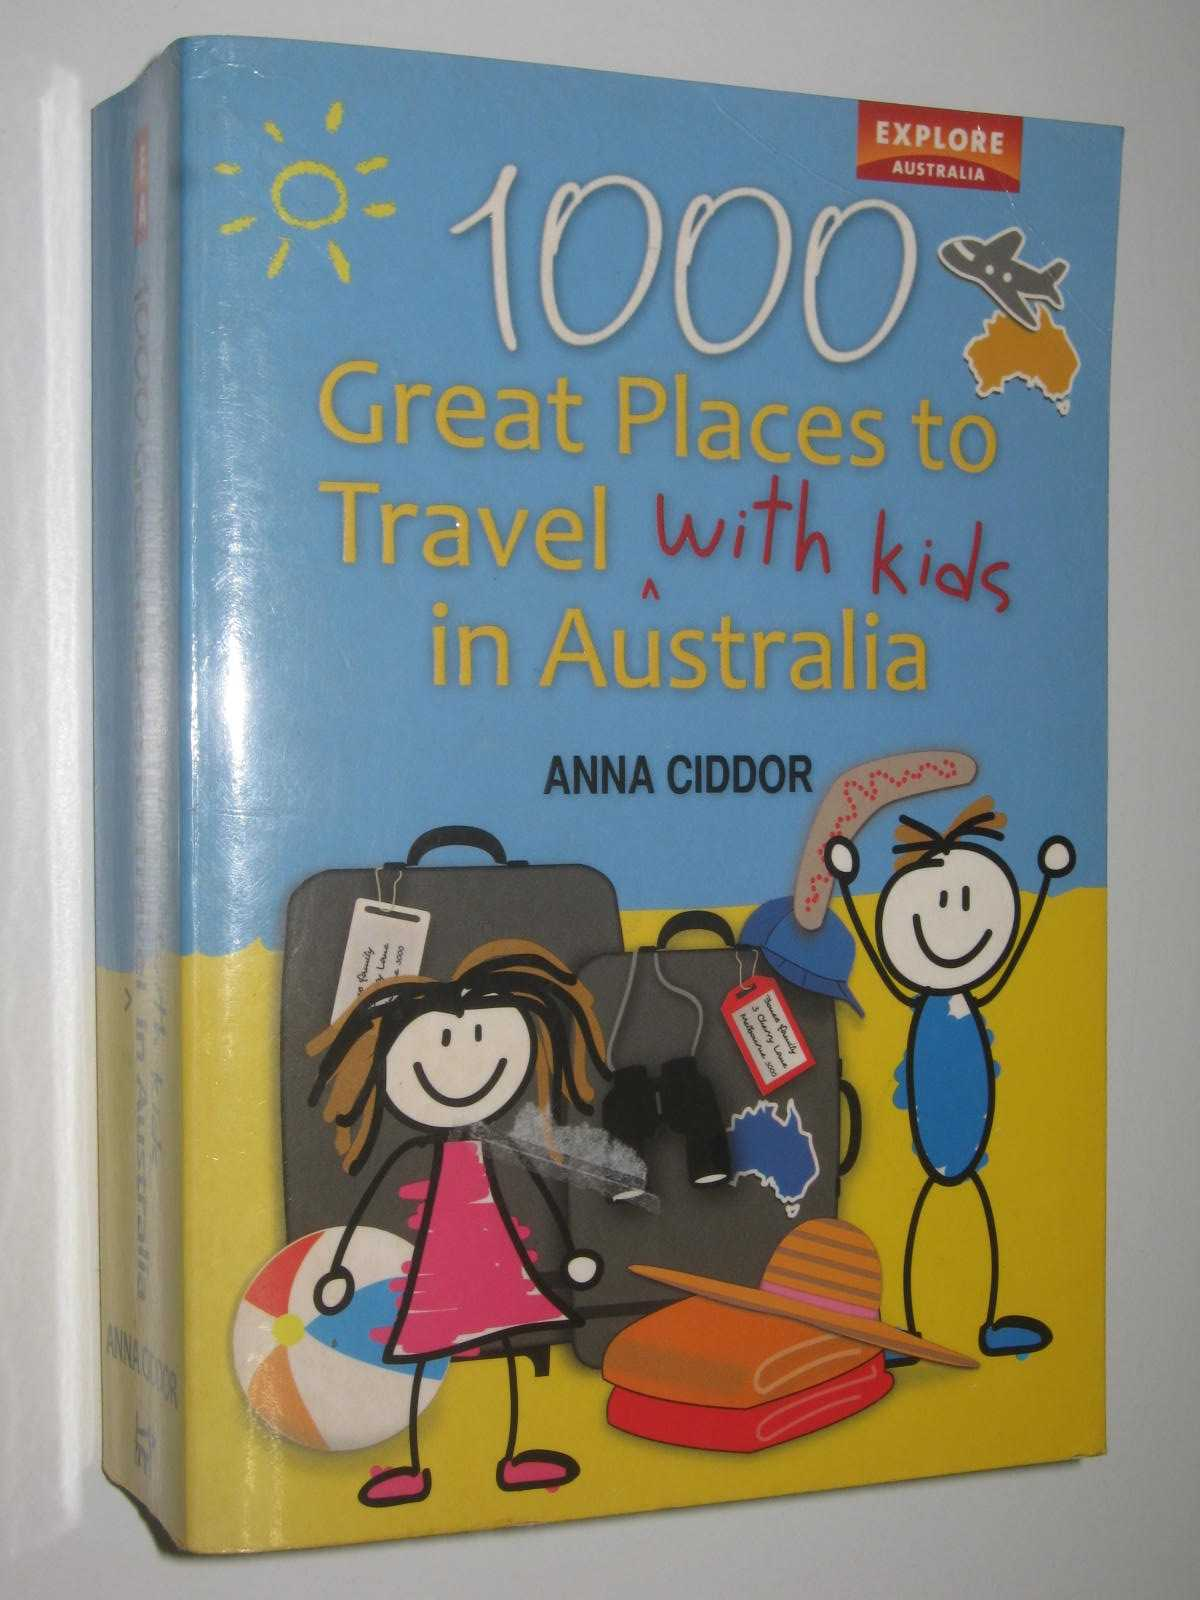 Image for 1000 Great Places to Travel with Kids n Australia